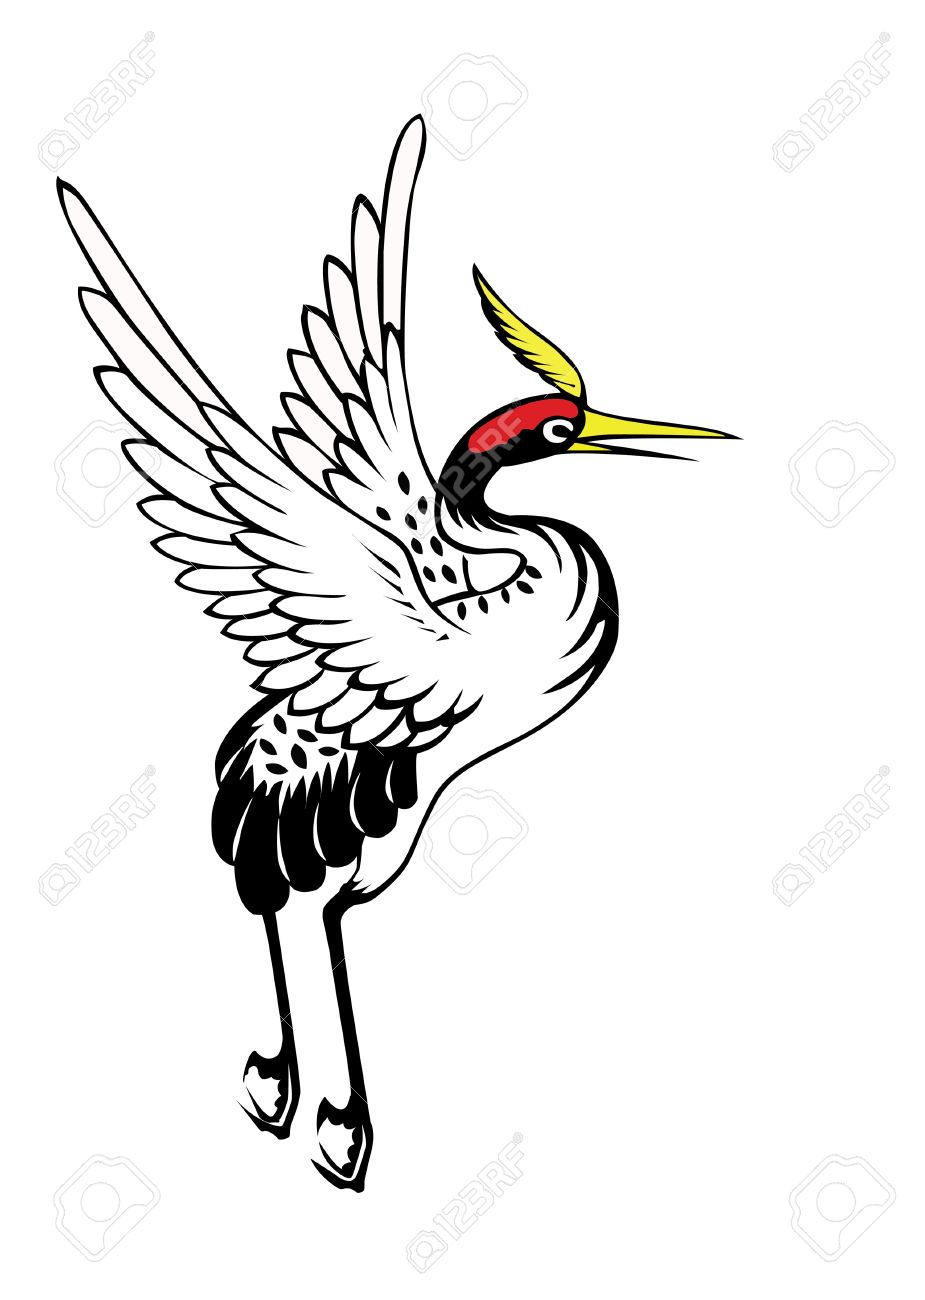 925x1300 Chinese Heron Painting On The White Background Stock Photo